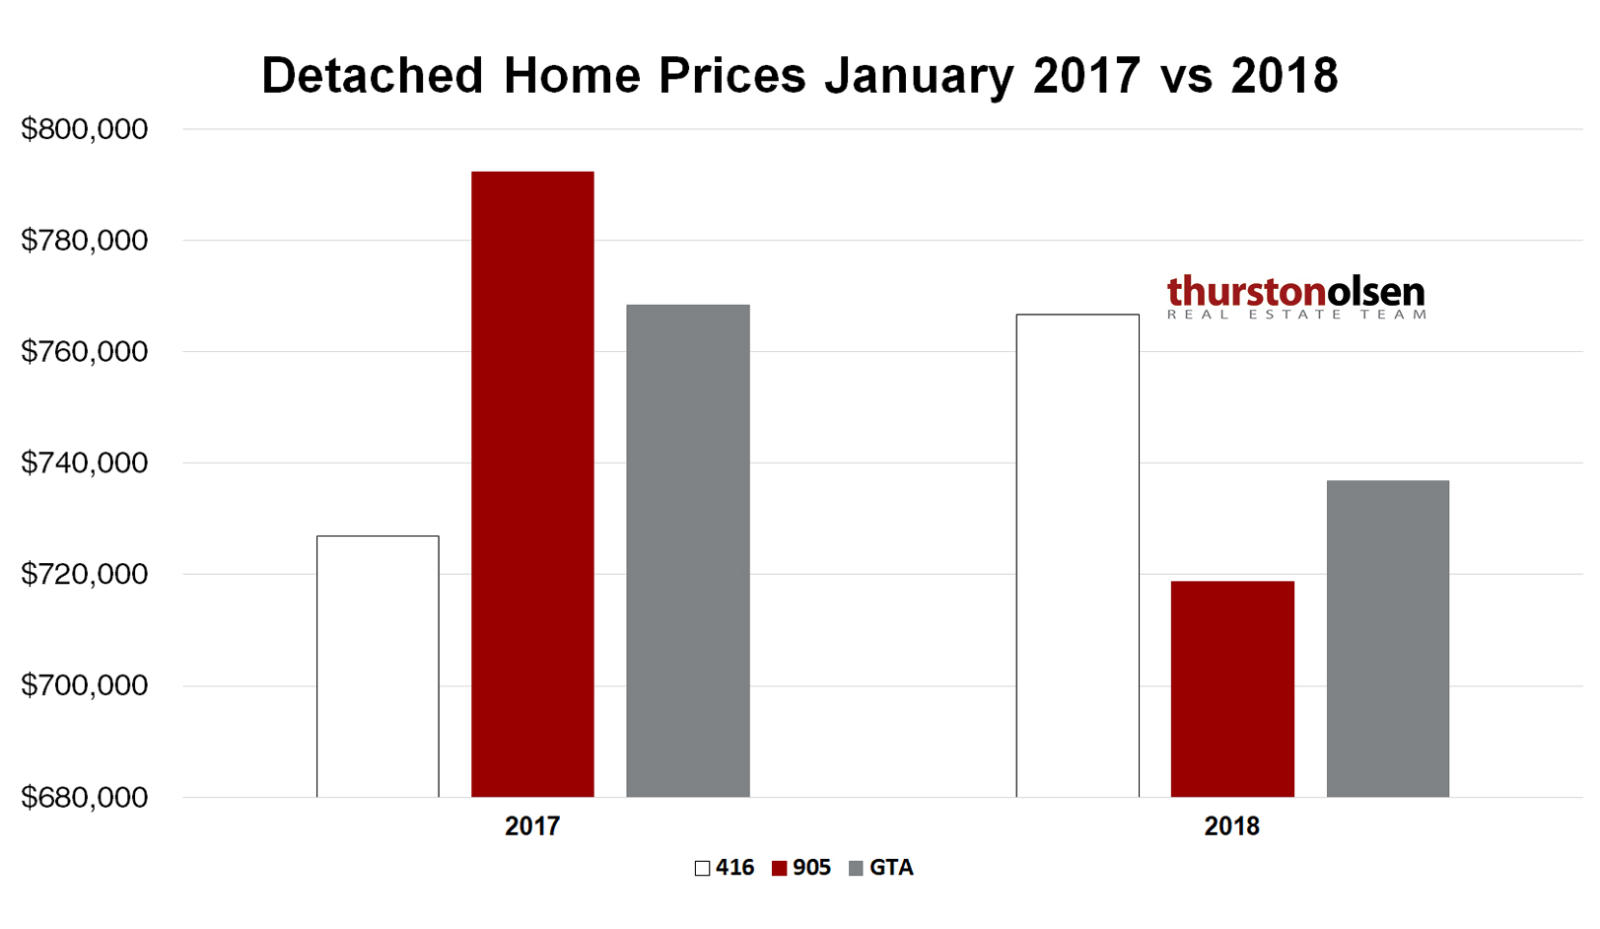 Detached Home Prices January 2017 vs 2018